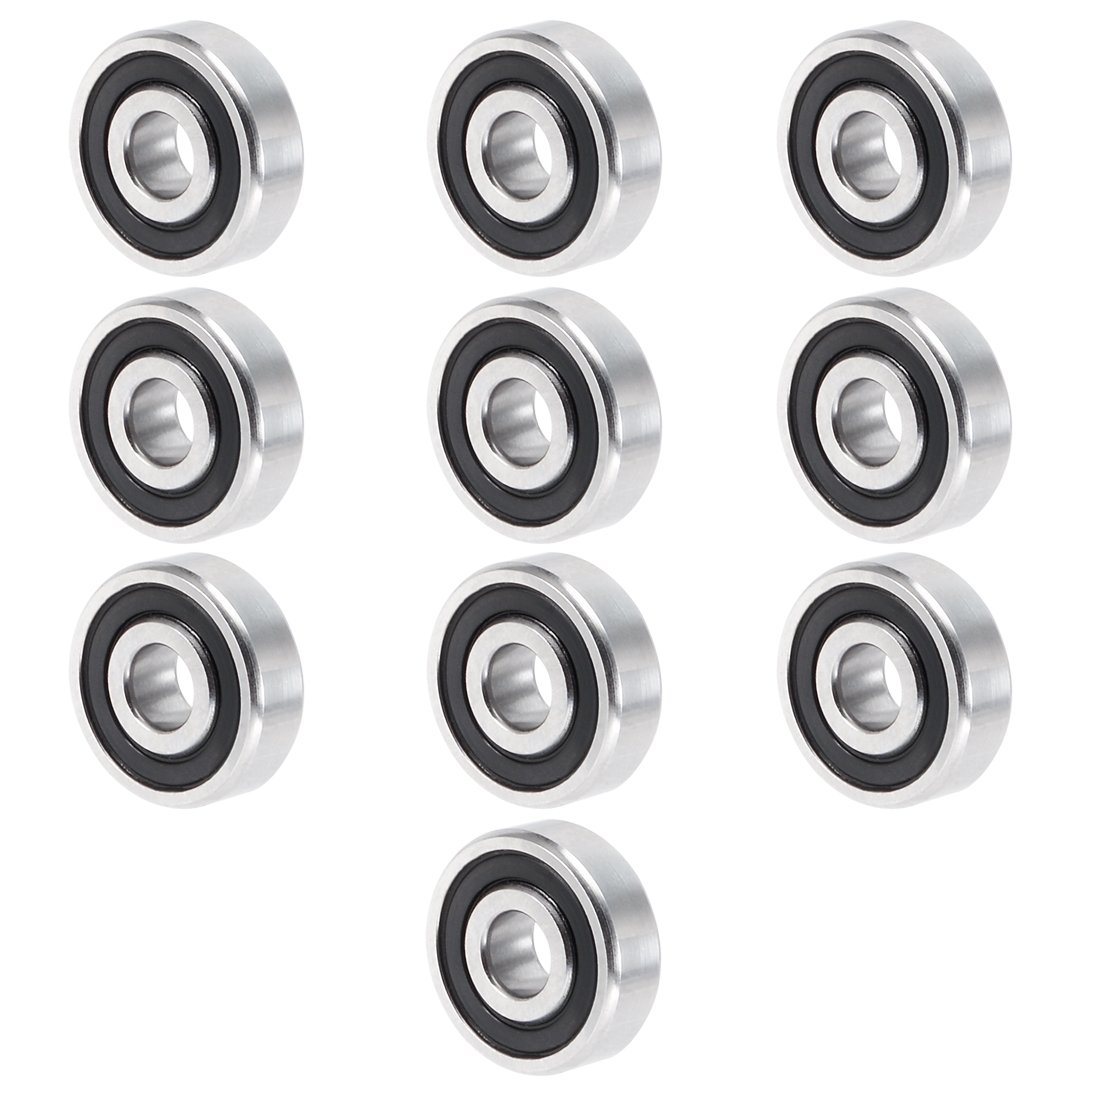 uxcell 10pcs 604 2RS 4mmx12mmx4mm Double Sealed Miniature Deep Groove Ball Bearing